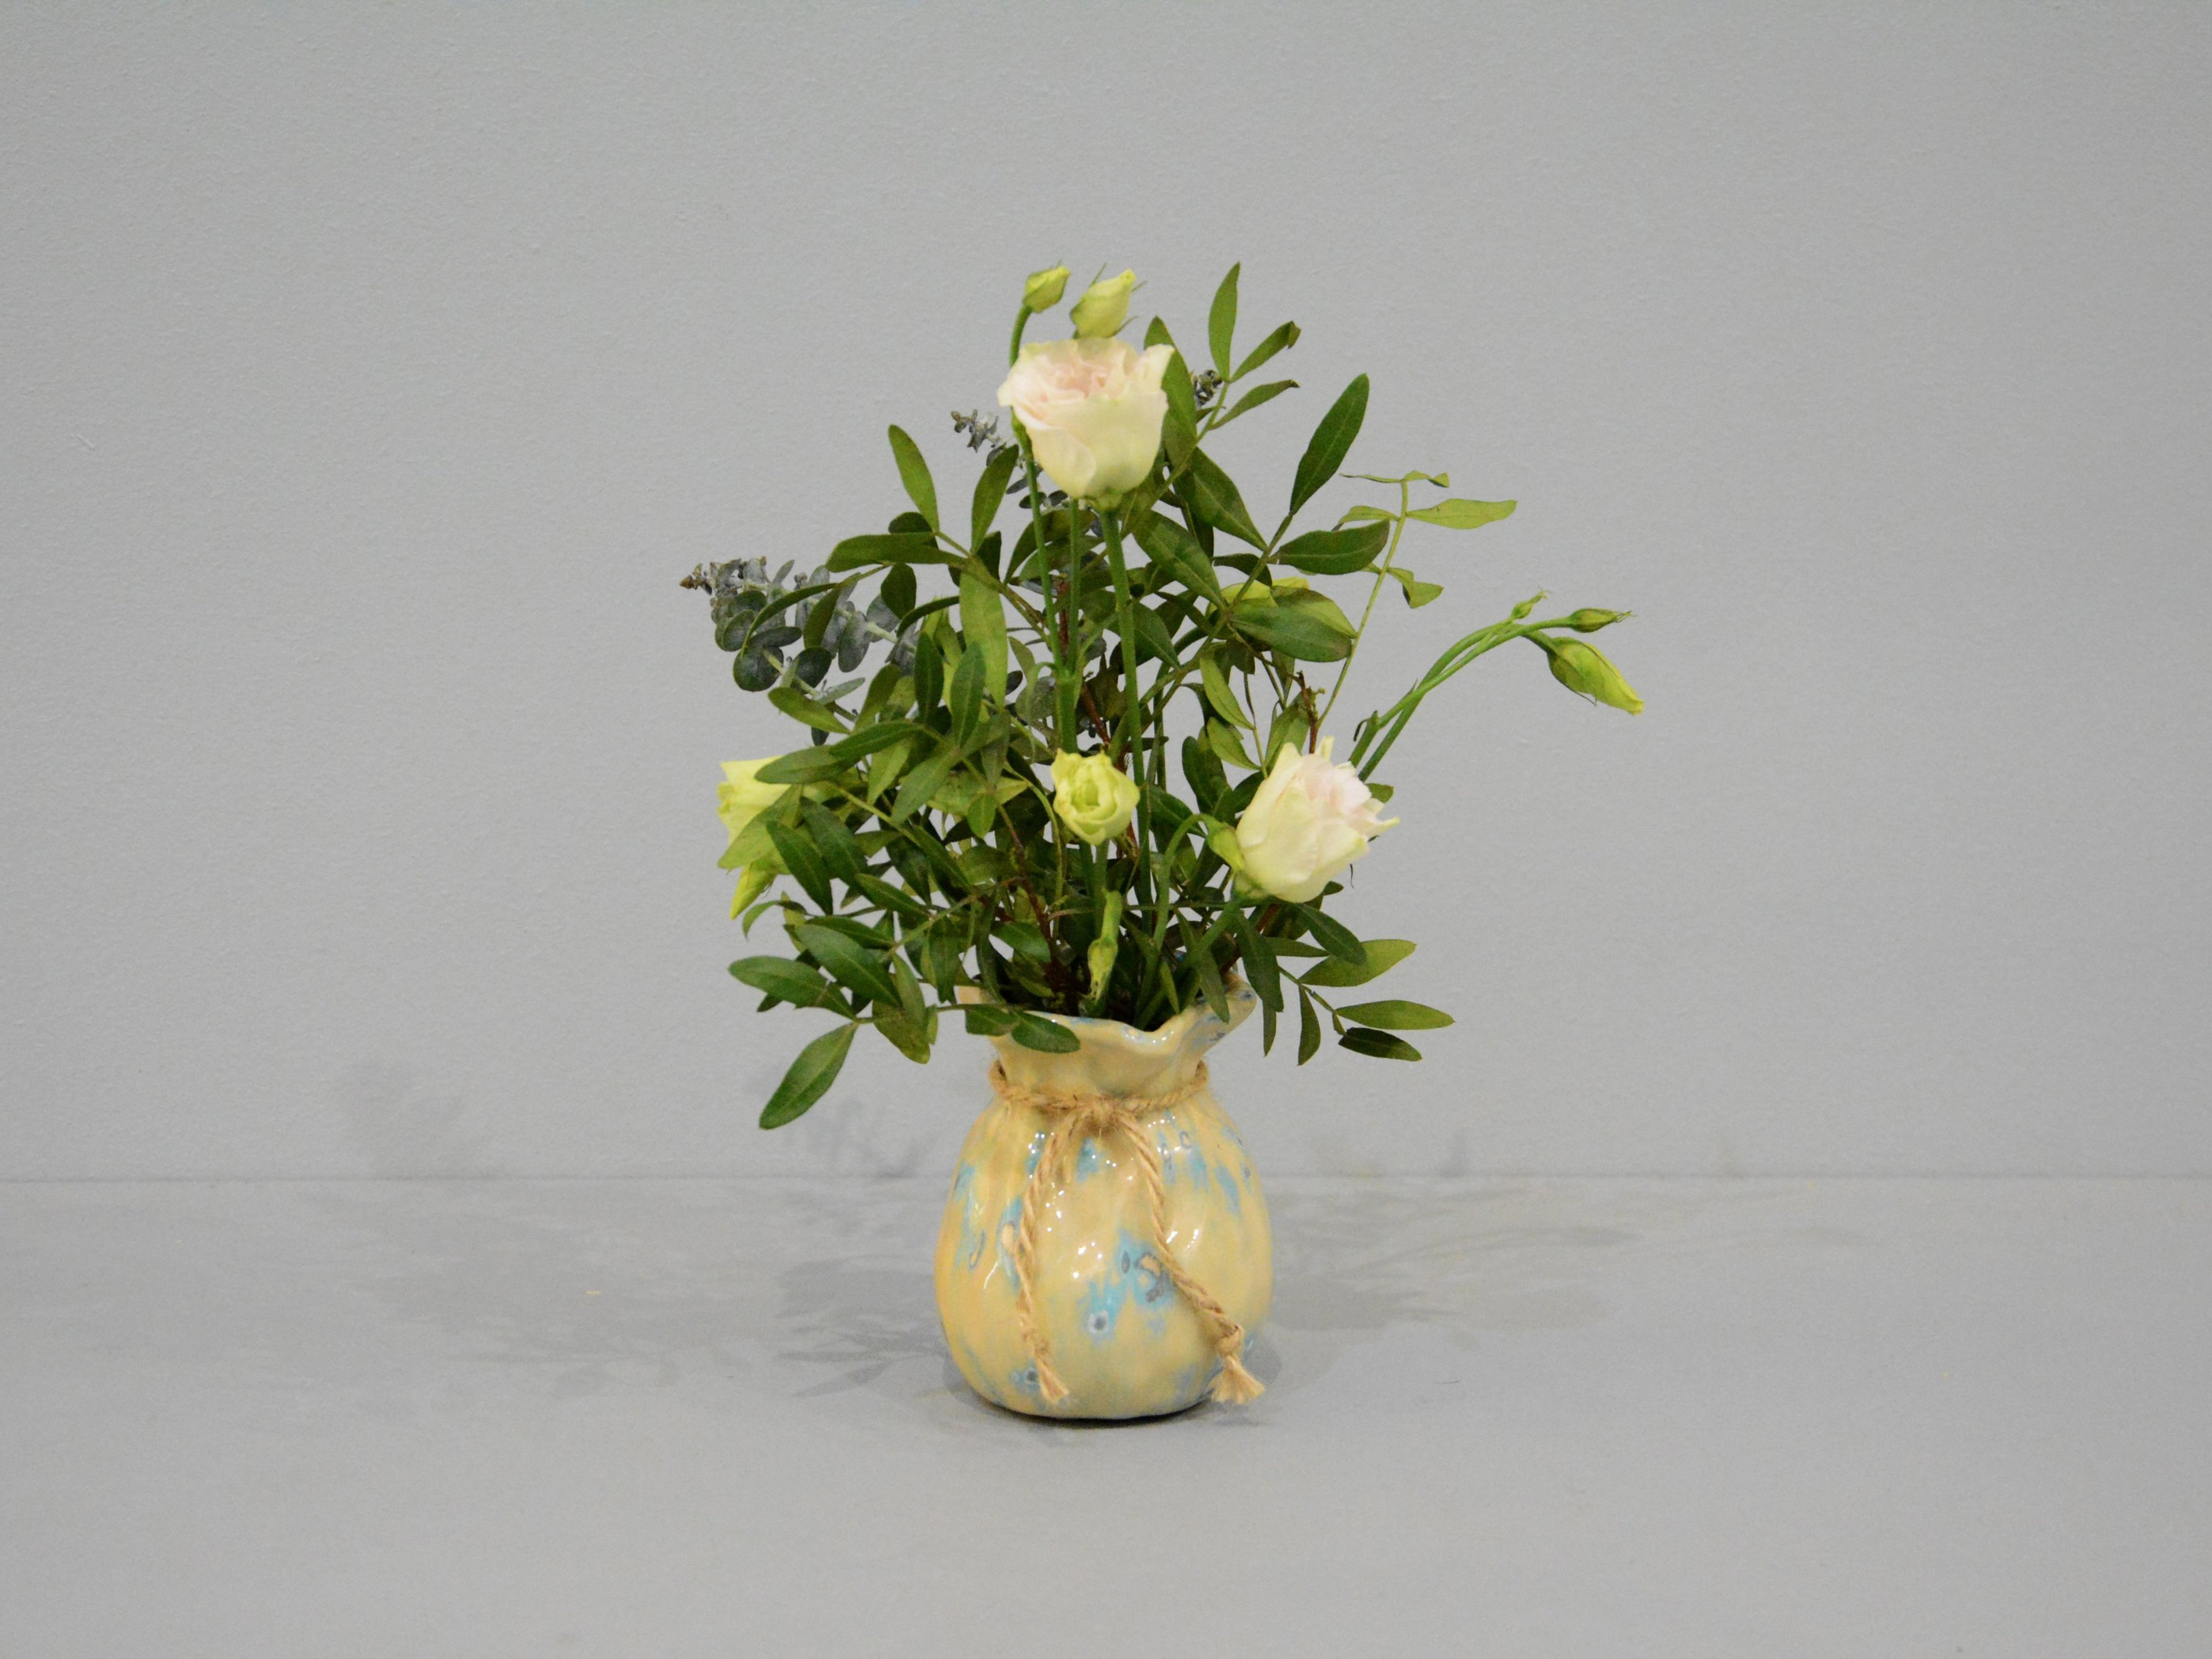 Candle vase «Beige Bagful», height - 9 cm, color - beige. Photo 1413-3840-2880.